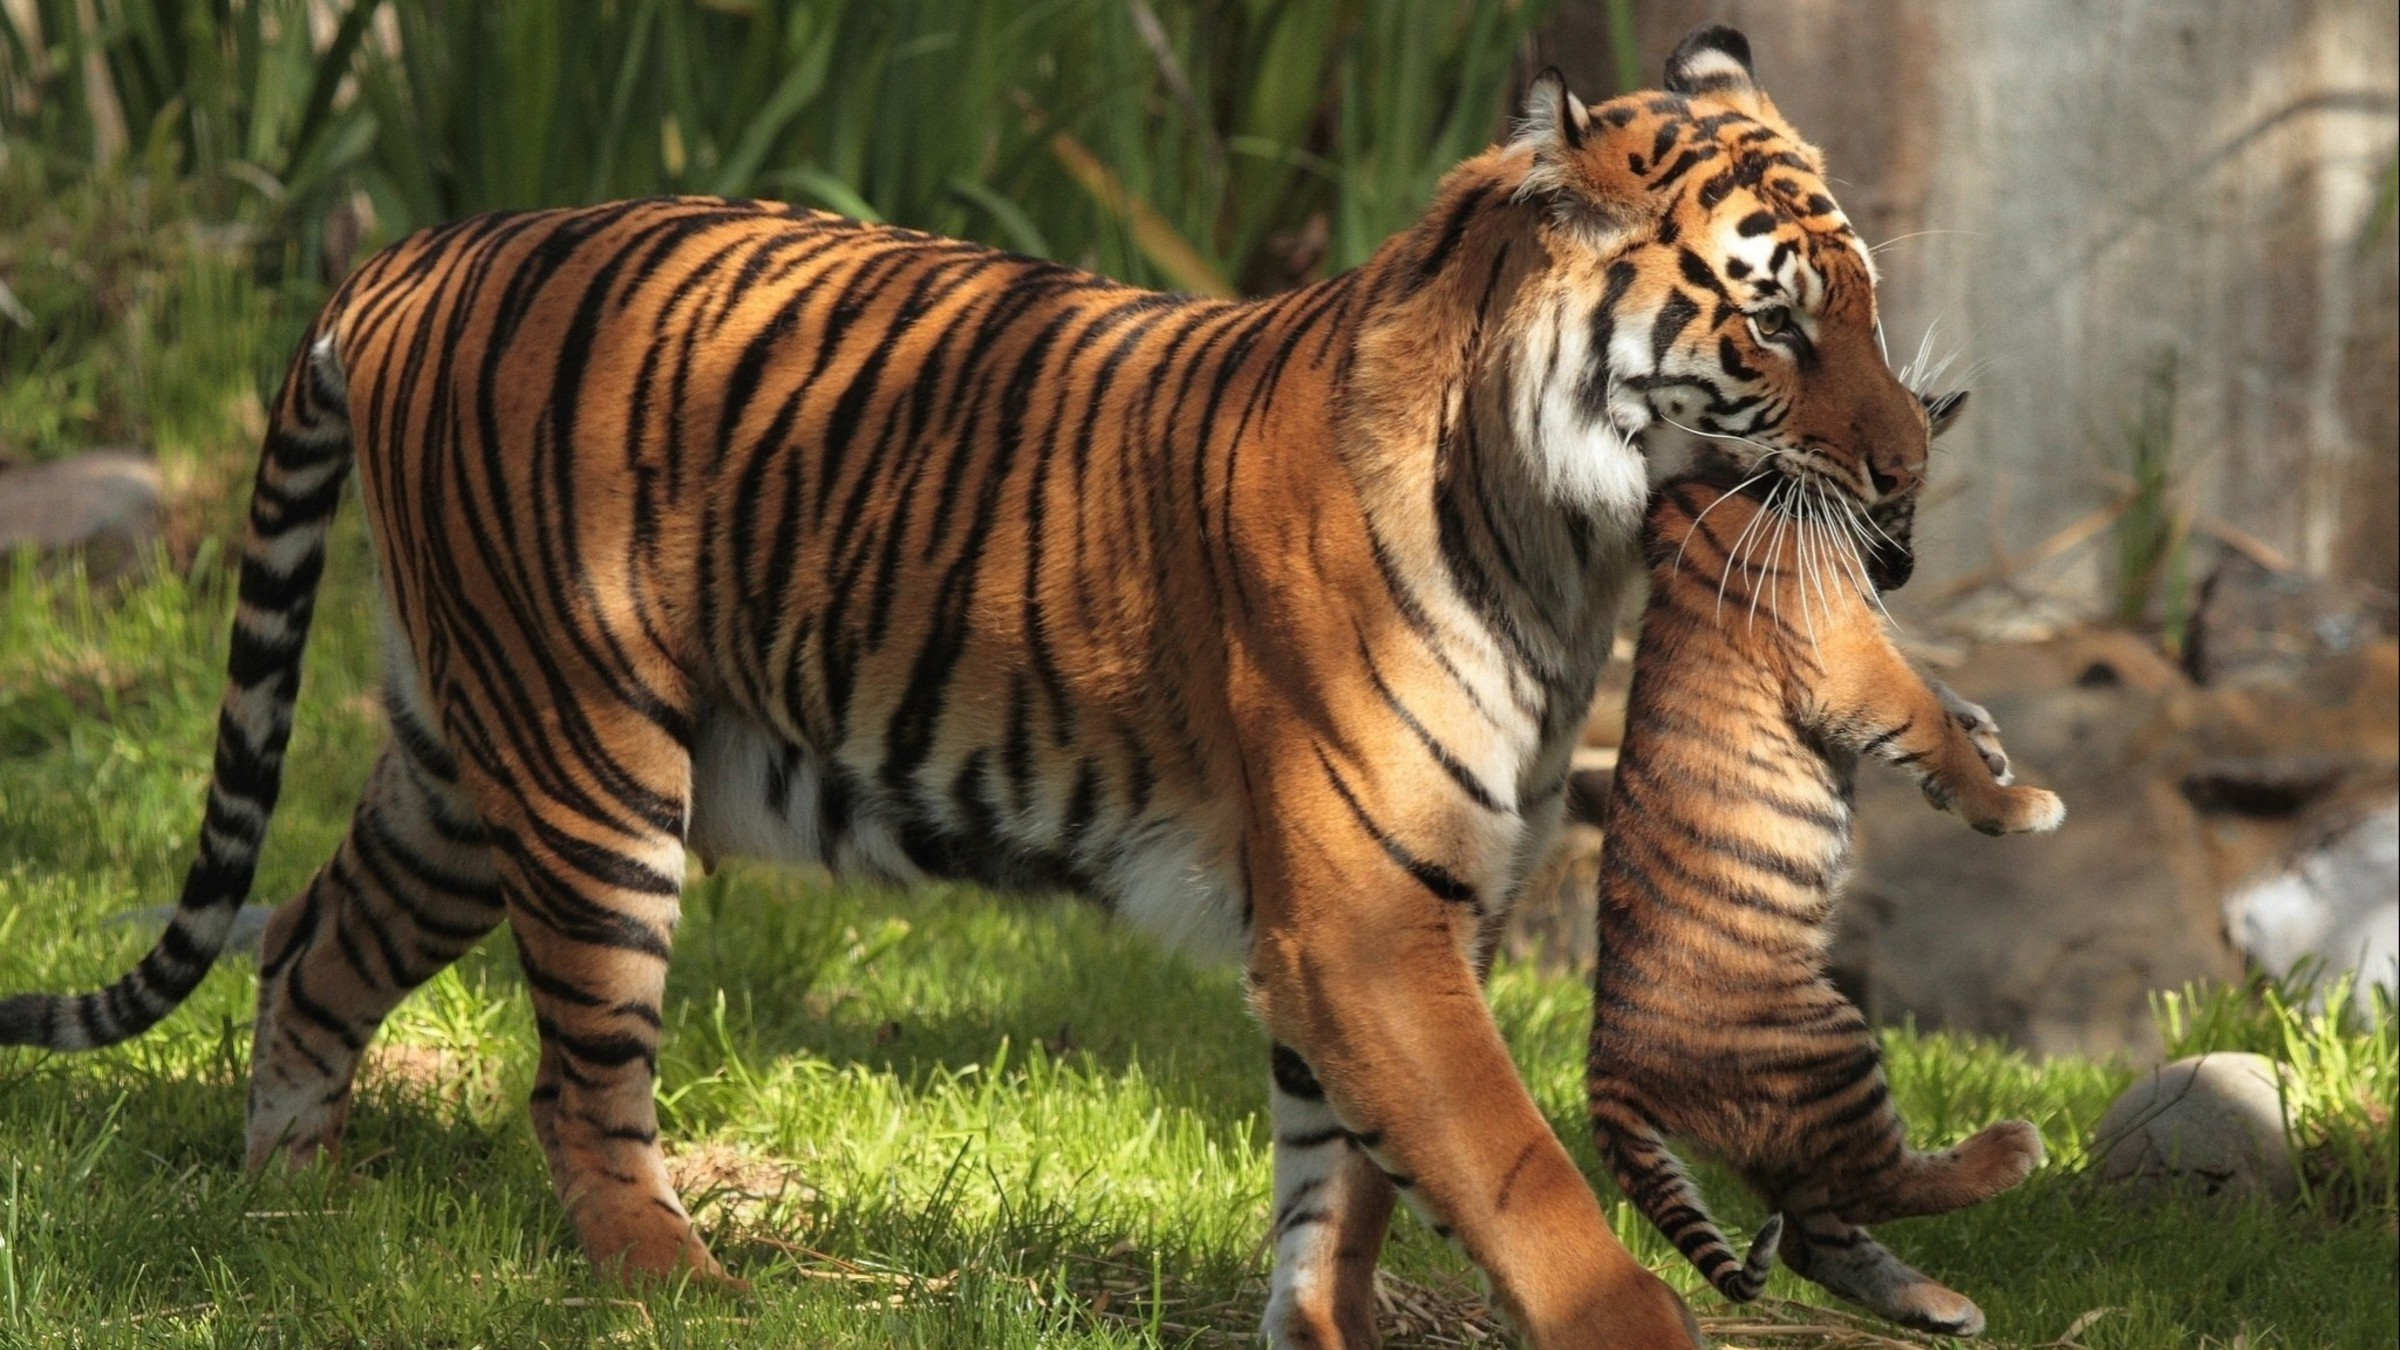 Tiger Animals Baby Animals Nature Wallpapers Hd: Animals Tigers Baby Motherhood Wallpaper